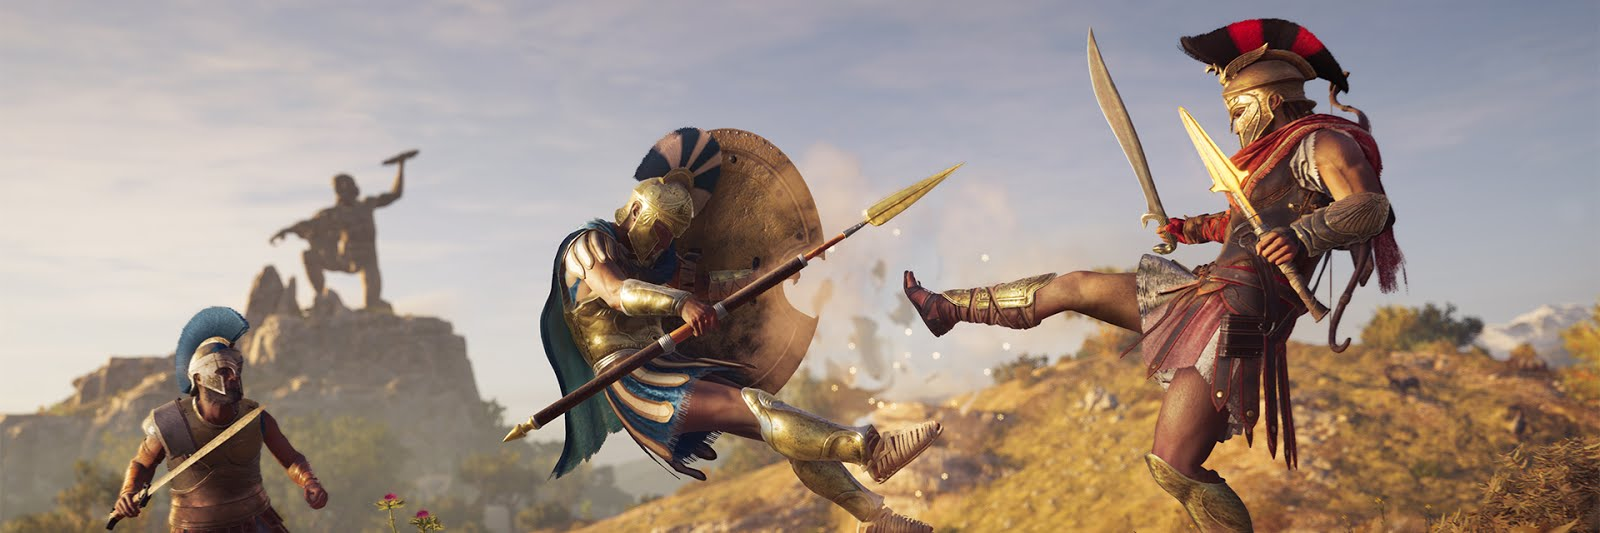 GDC 2019 Session: The Cutting Edge: Assassin's Creed Odyssey on Project Stream Image